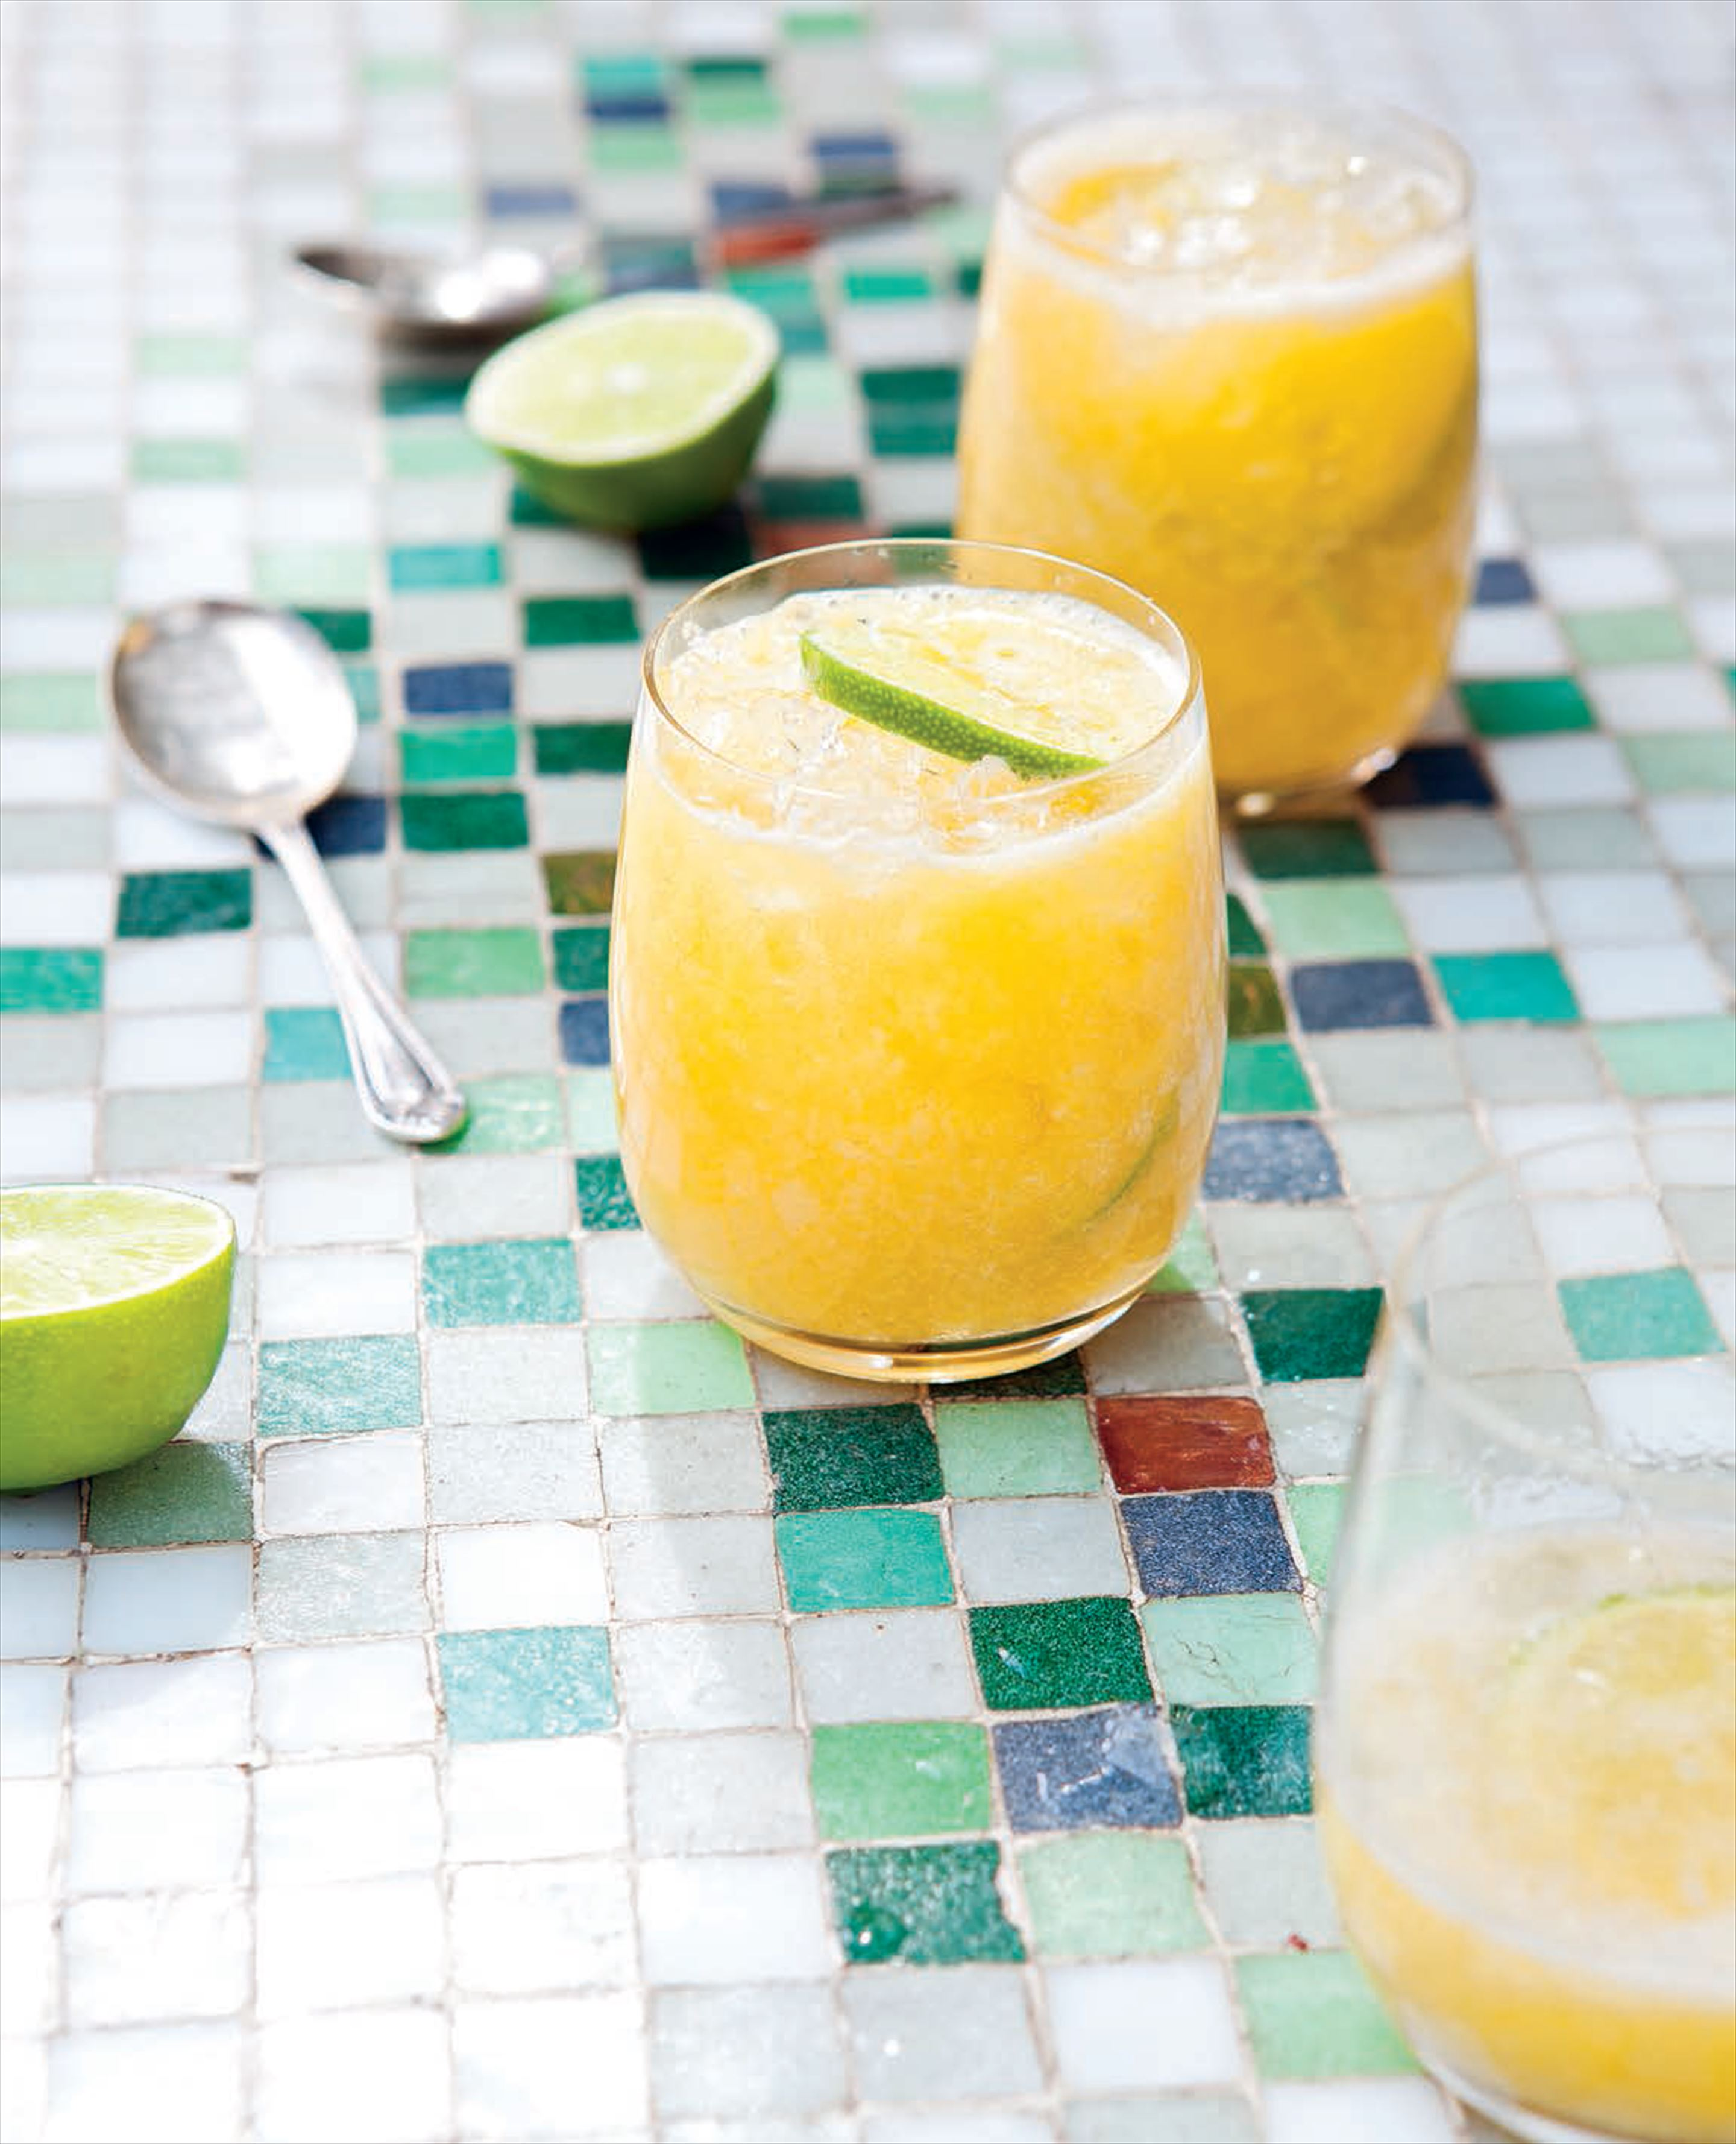 Brazilian blended pineapple and passionfruit cocktail